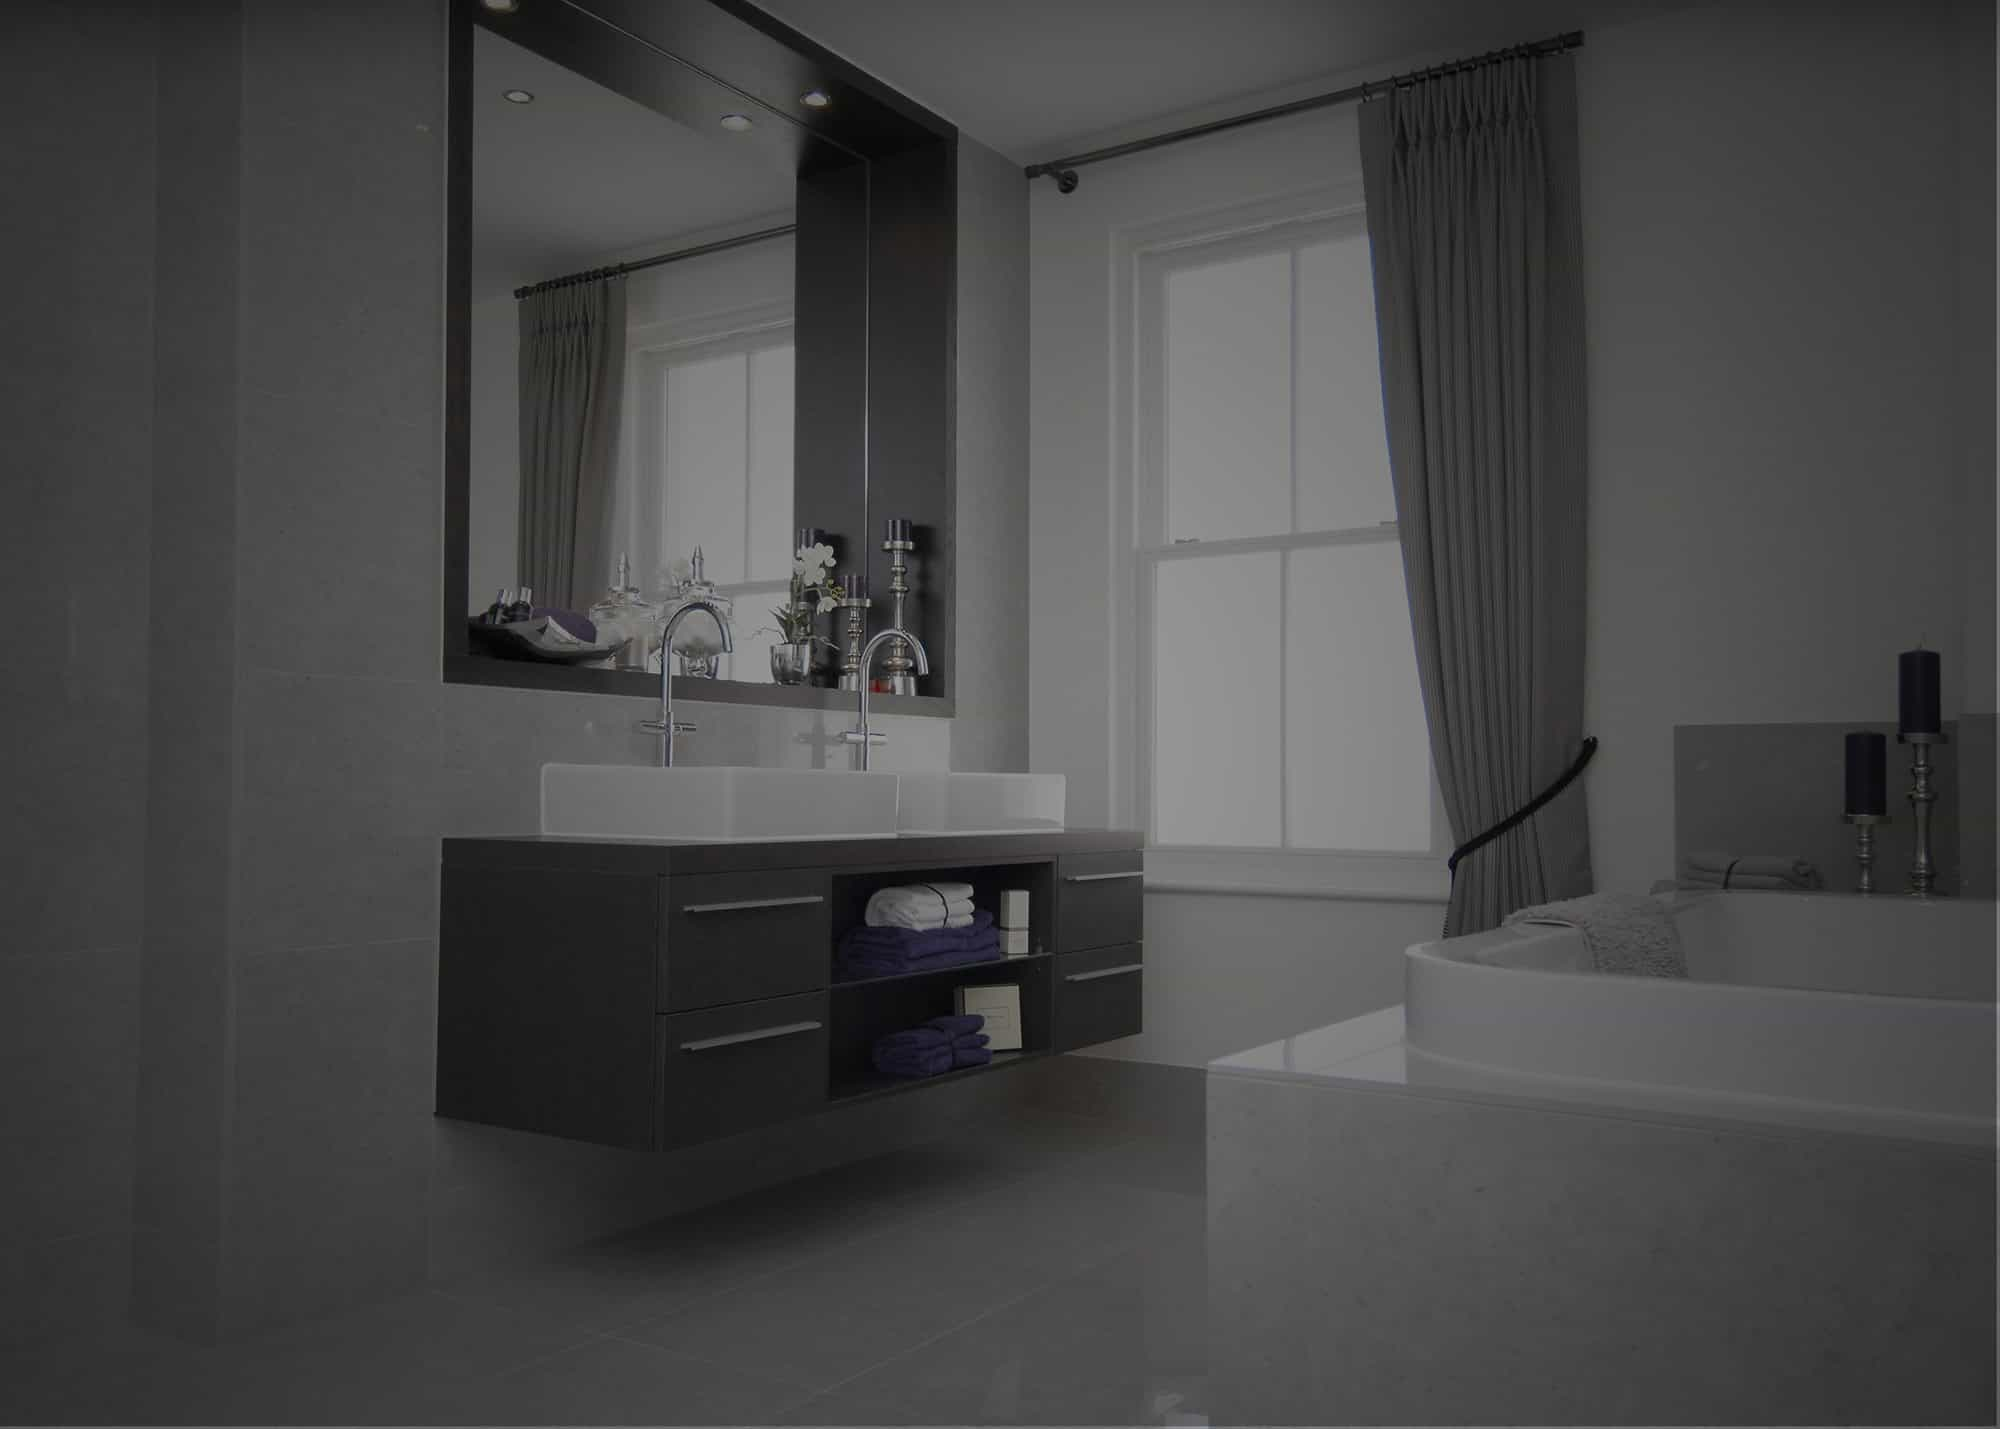 Armarii Design And Manufacture Fitted Furniture For Bathrooms